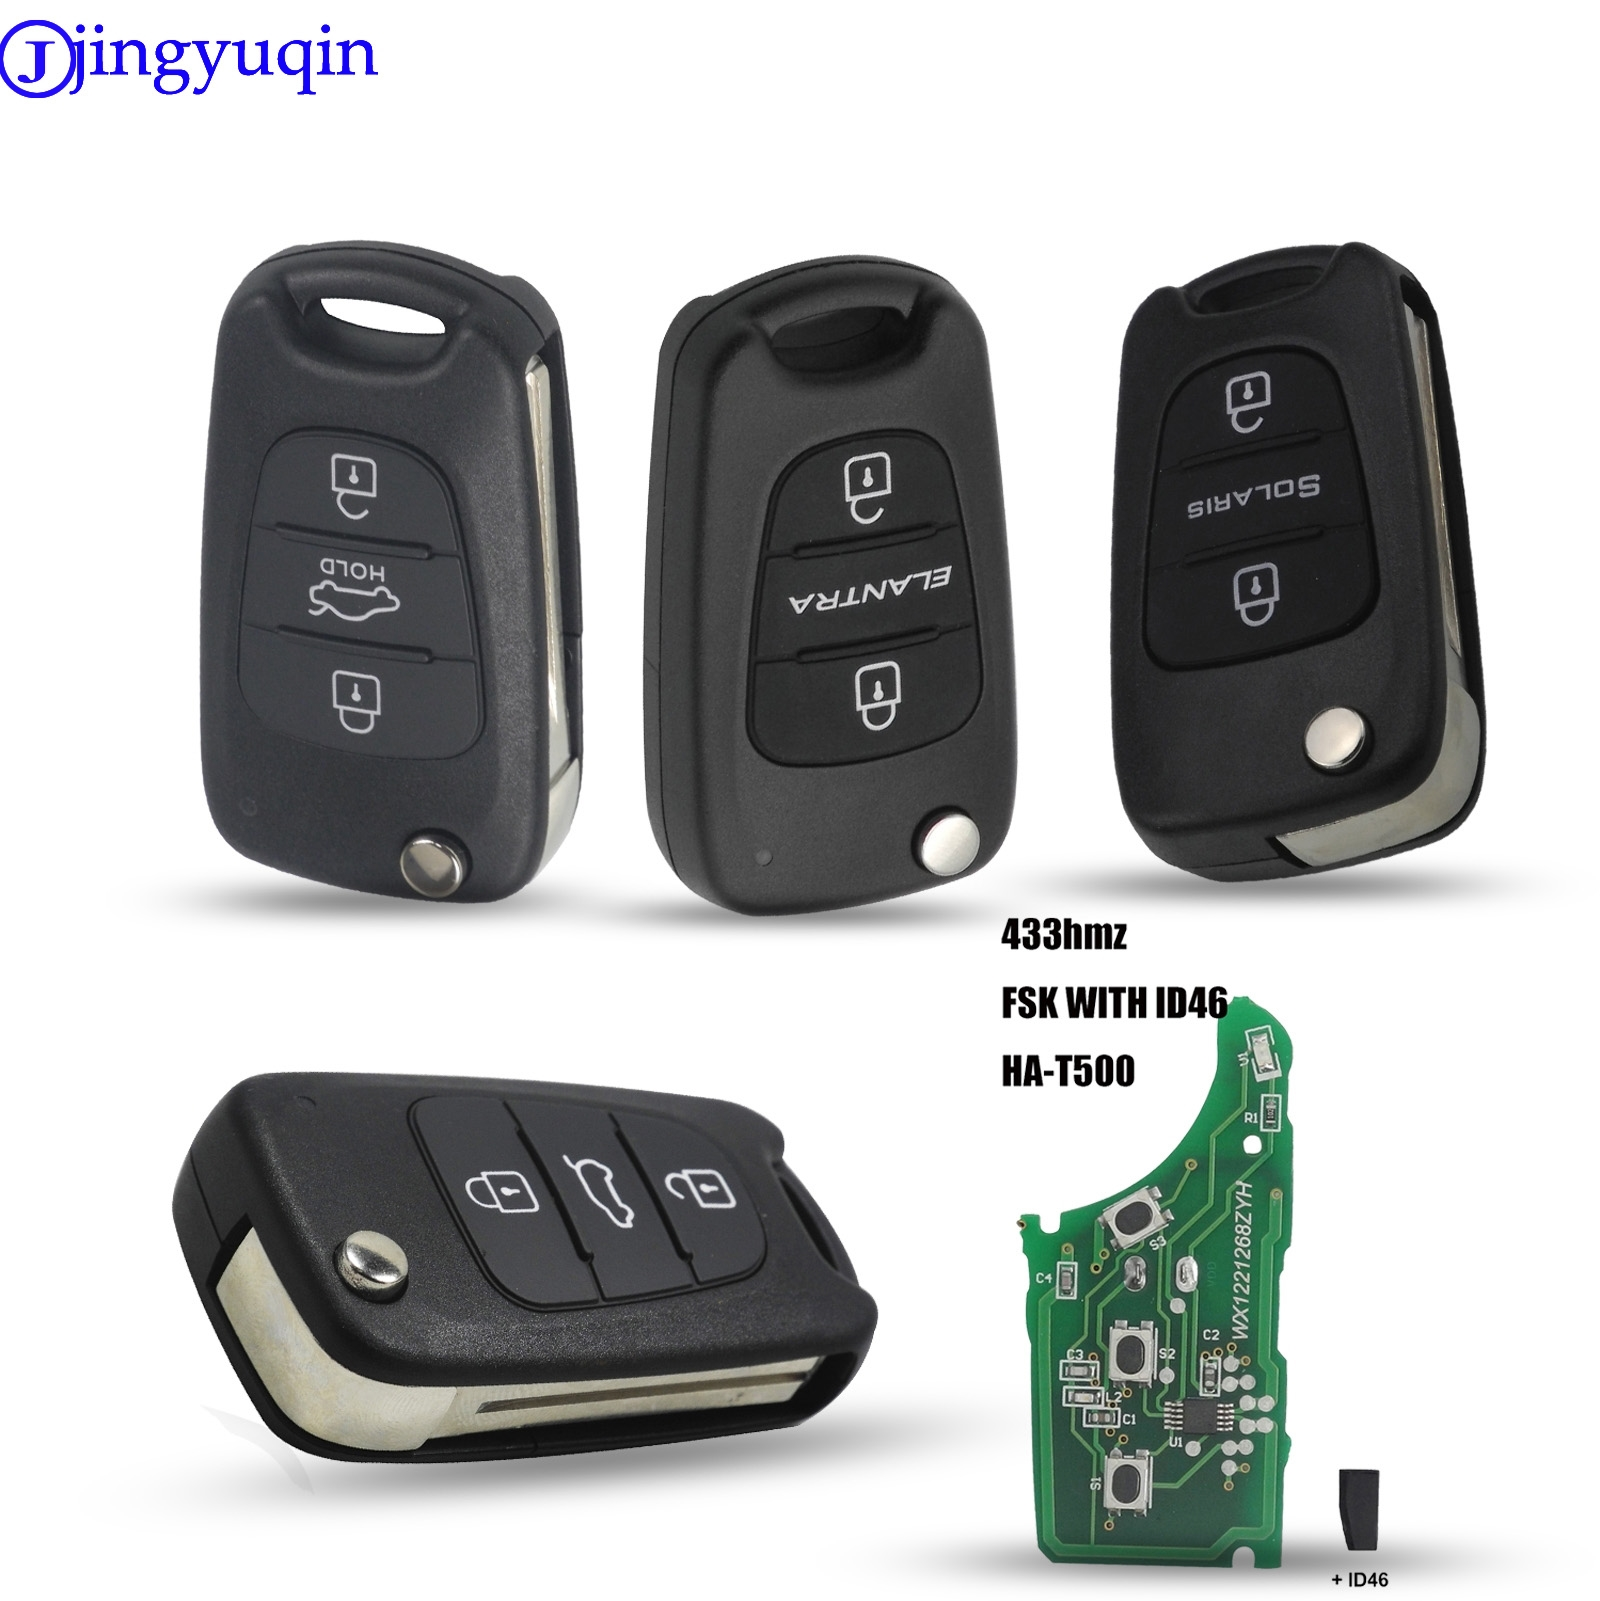 4 Buttons Replacement Flip Folding Smart Car Key Shell Cover Fit for Hyundai Vehicles Accent Sonata Elantra Keyless Entry Remote Key Fob Case